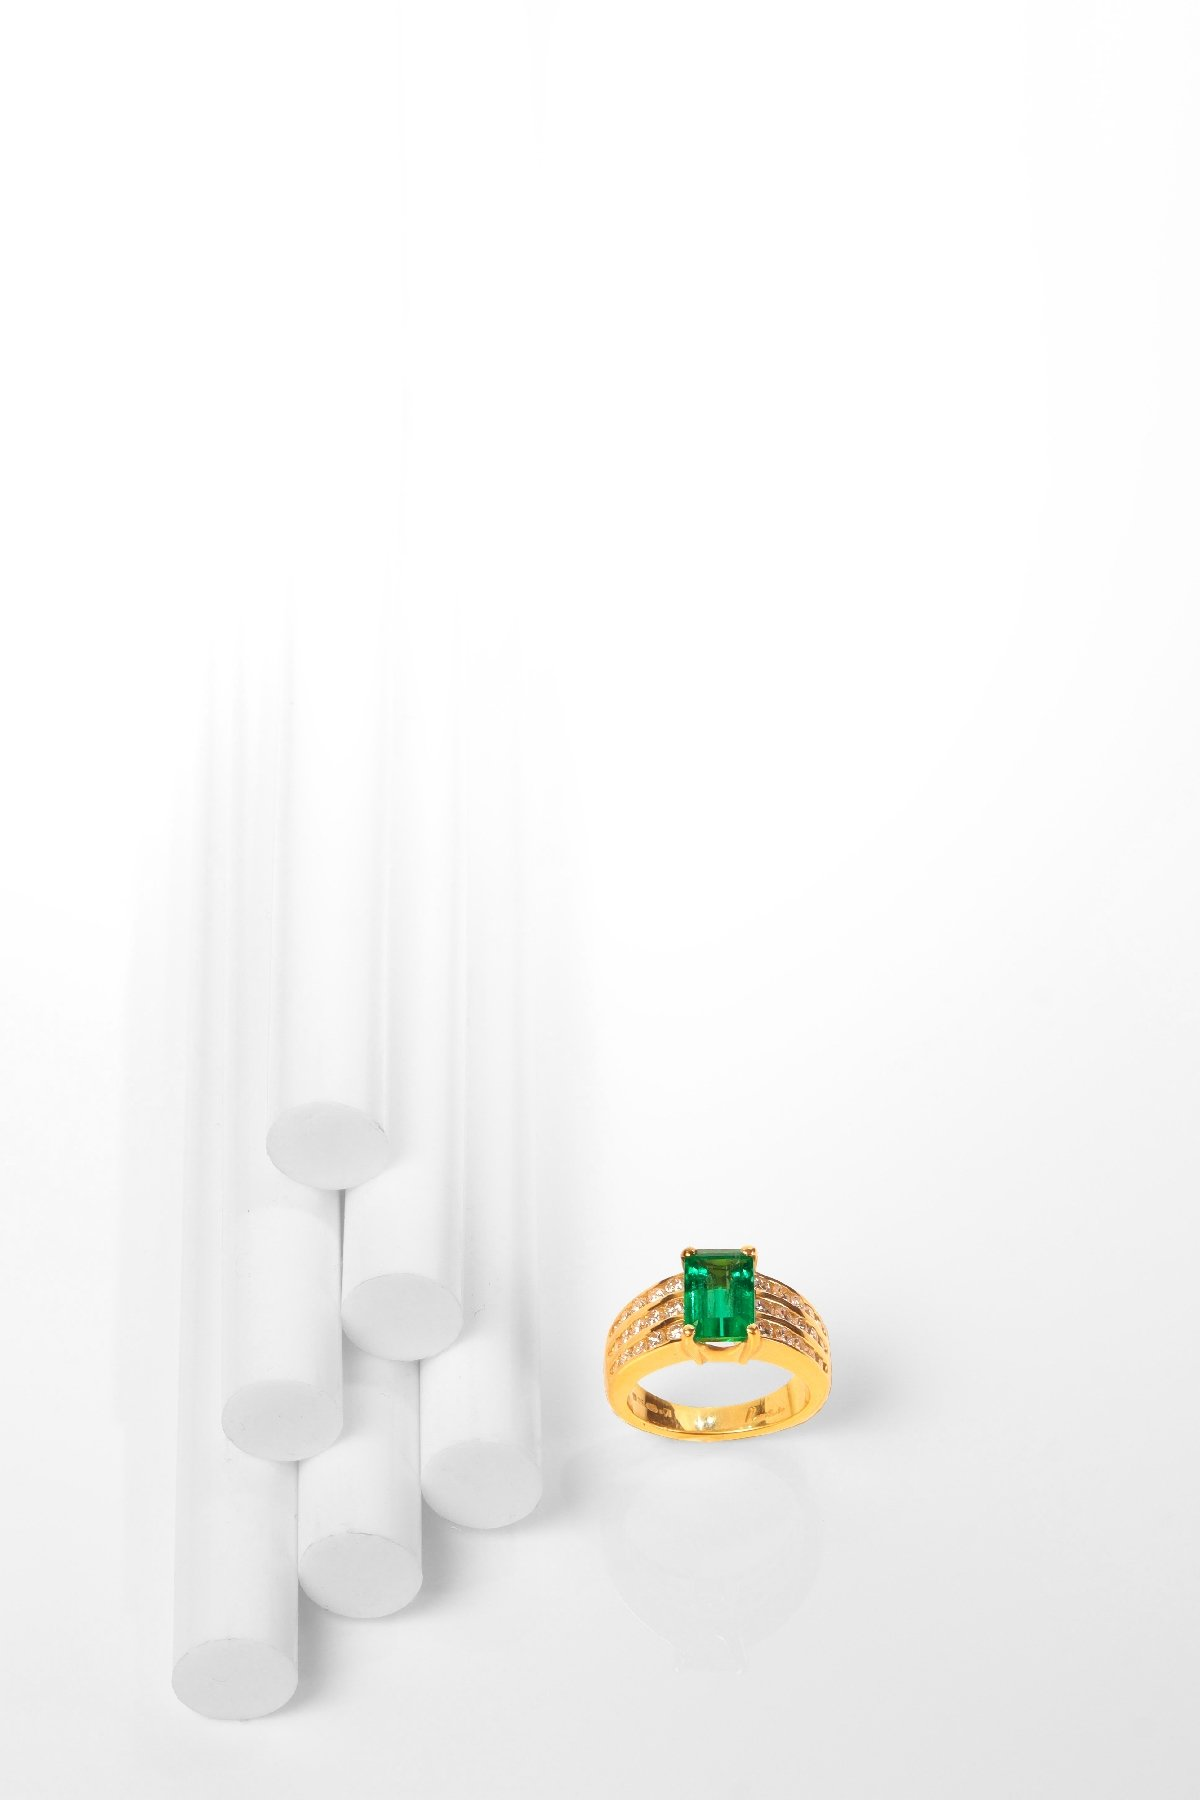 Click the picture to get to see this Vintage Kutchinsky 2.33 Carat Natural Emerald & Diamond 18 Karat Yellow Gold Ring.